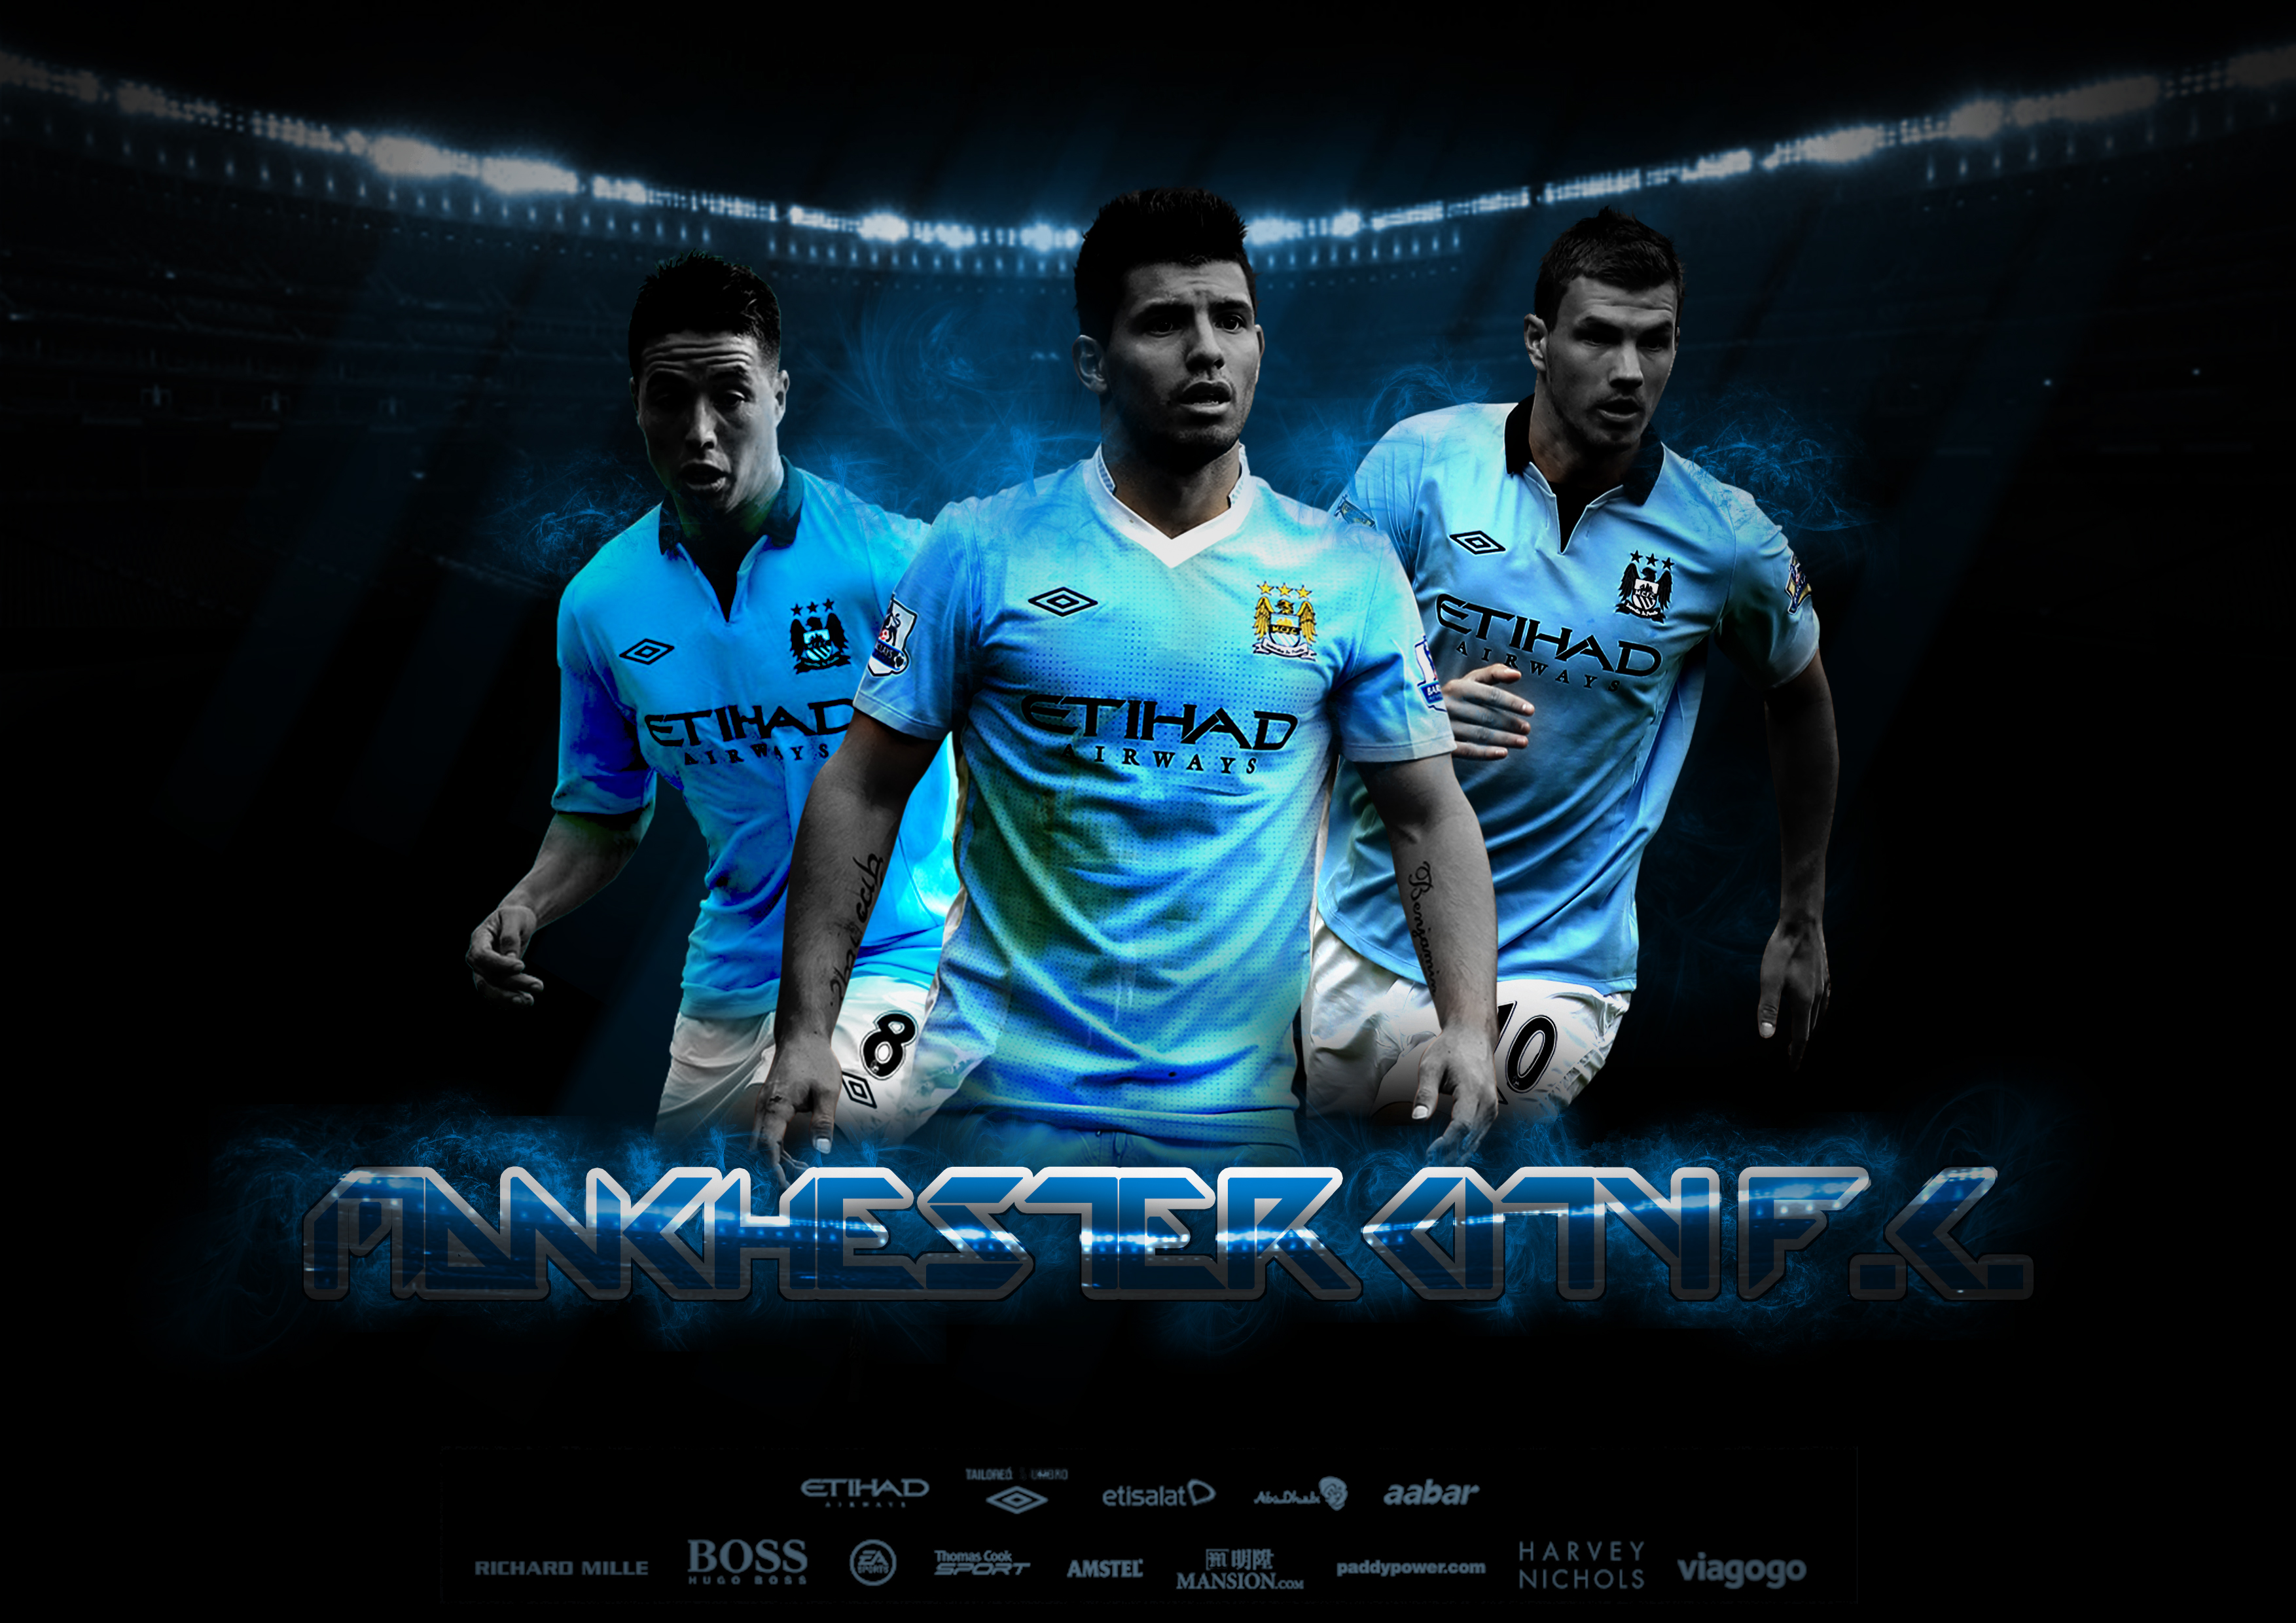 Man City Wallpapers 2015: New Manchester City Wallpaper